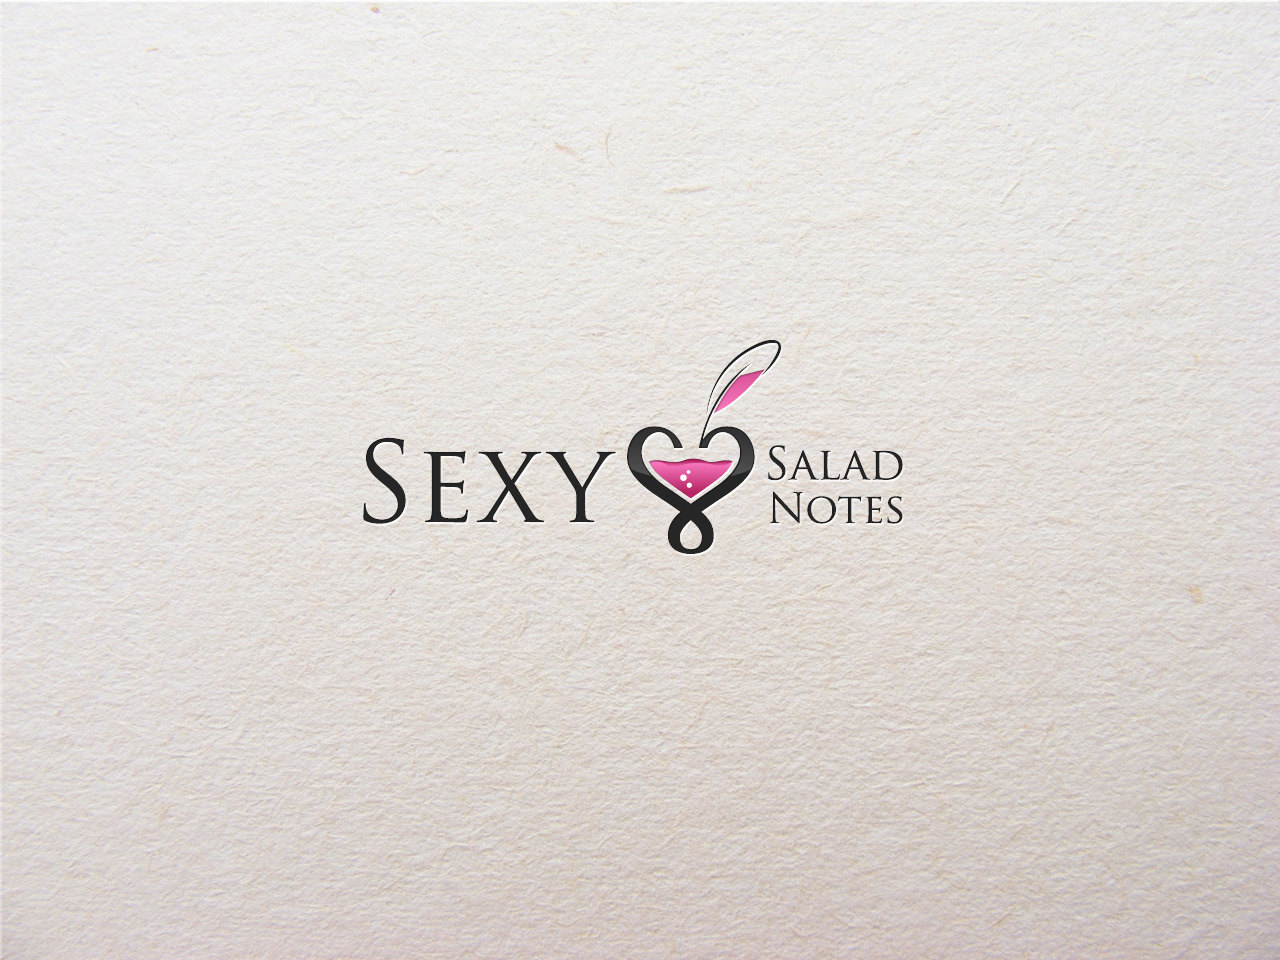 Logo Design by jpbituin - Entry No. 12 in the Logo Design Contest Artistic Logo Design for Sexy Salad Inc..